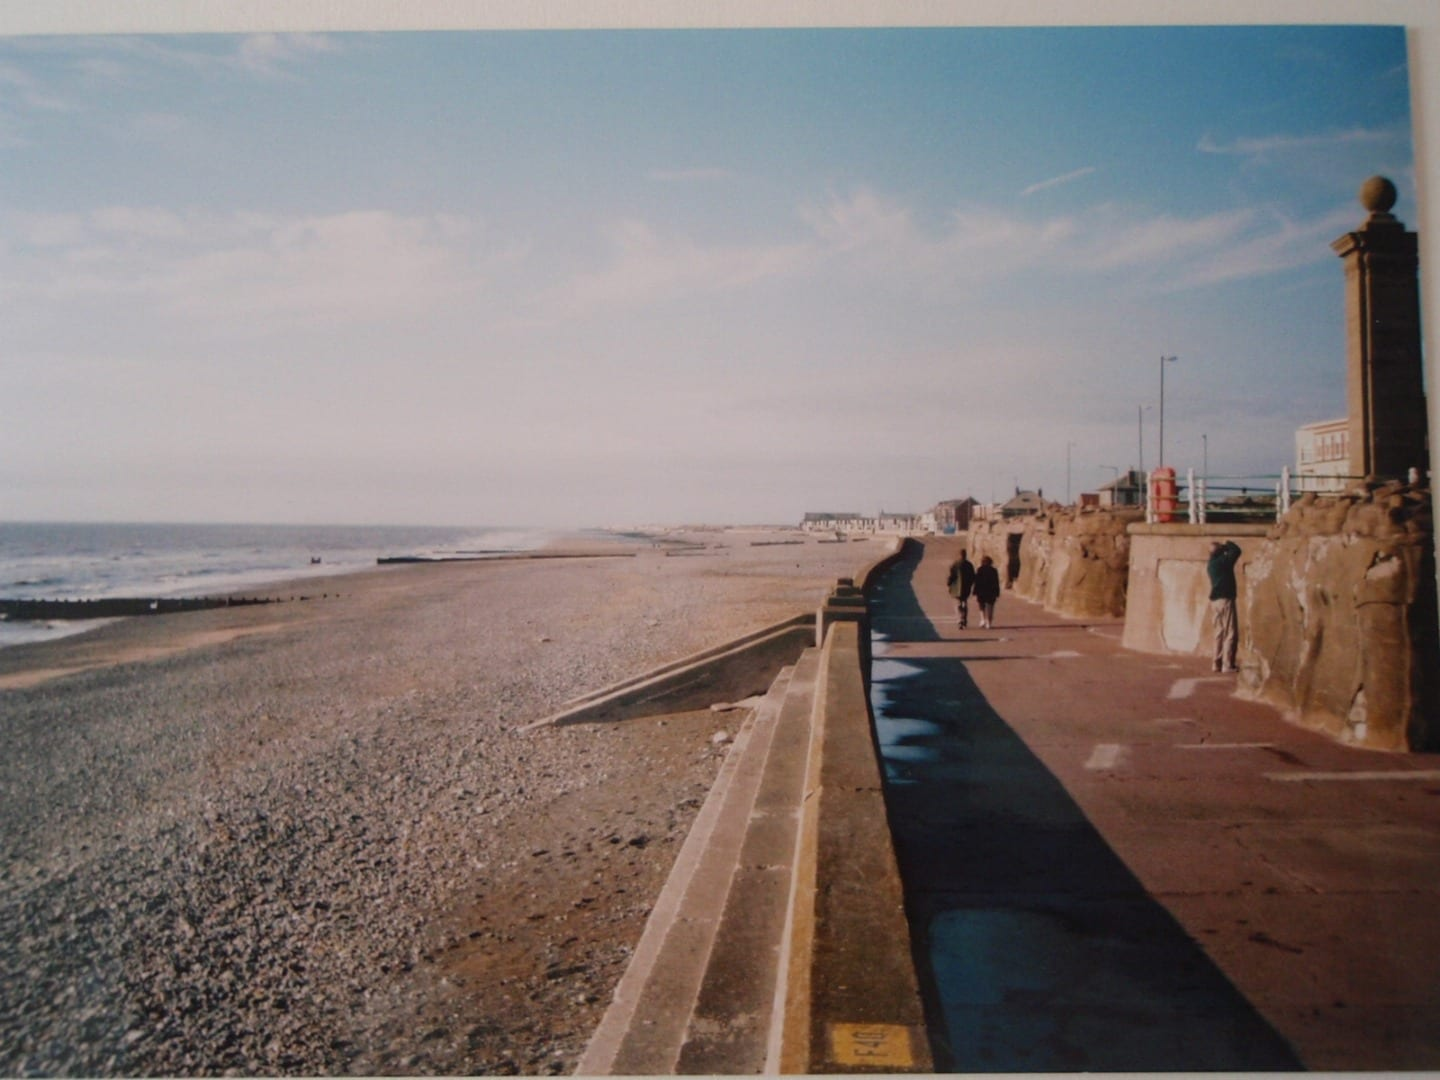 The old promenade at Cleveleys